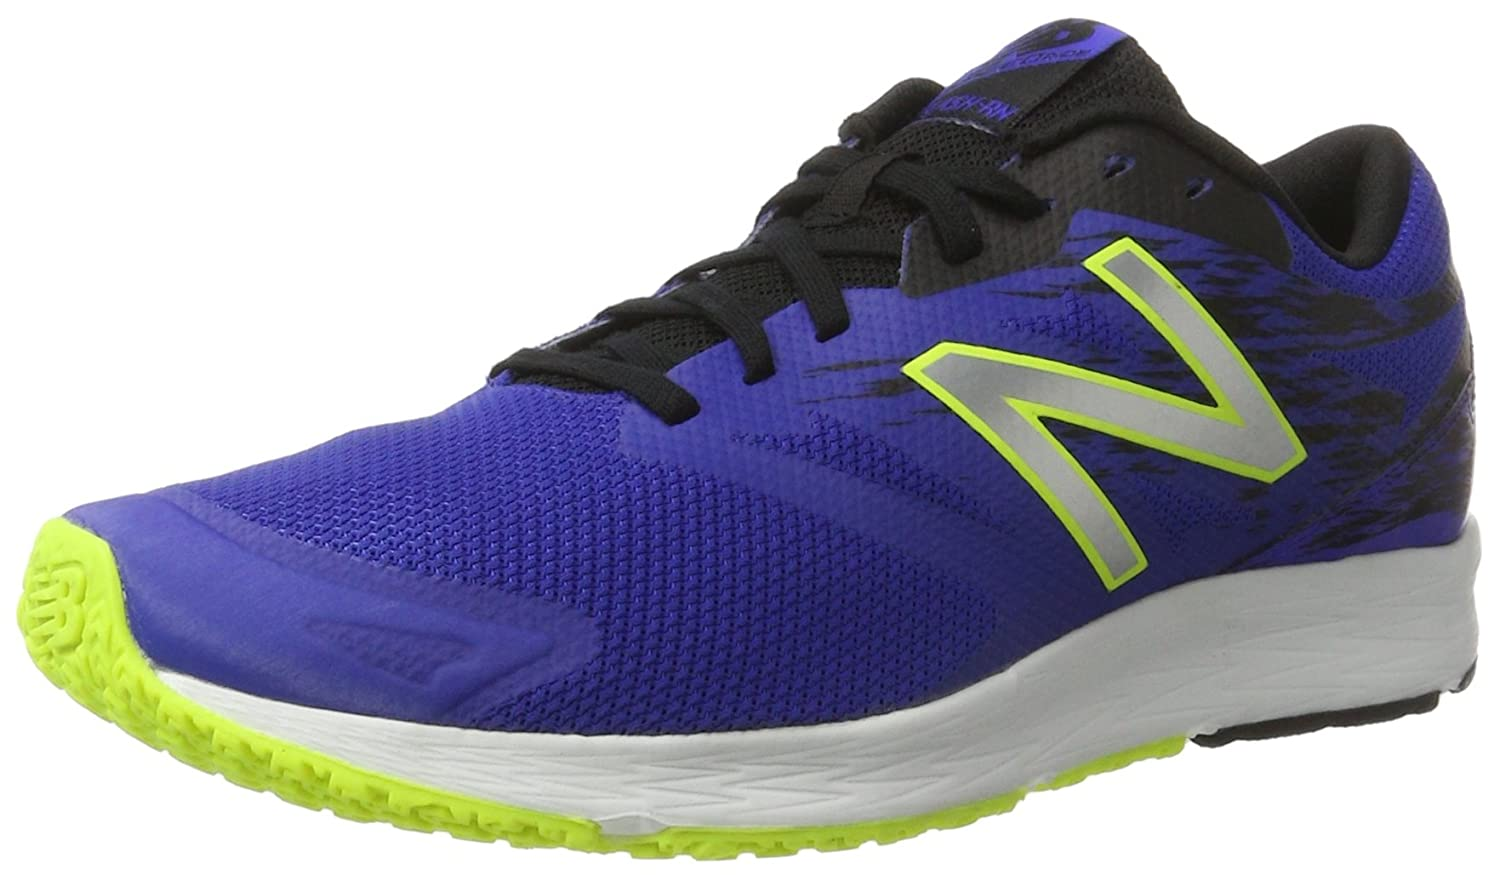 New Balance Herren Flash Run V1 Hallenschuhe, blau